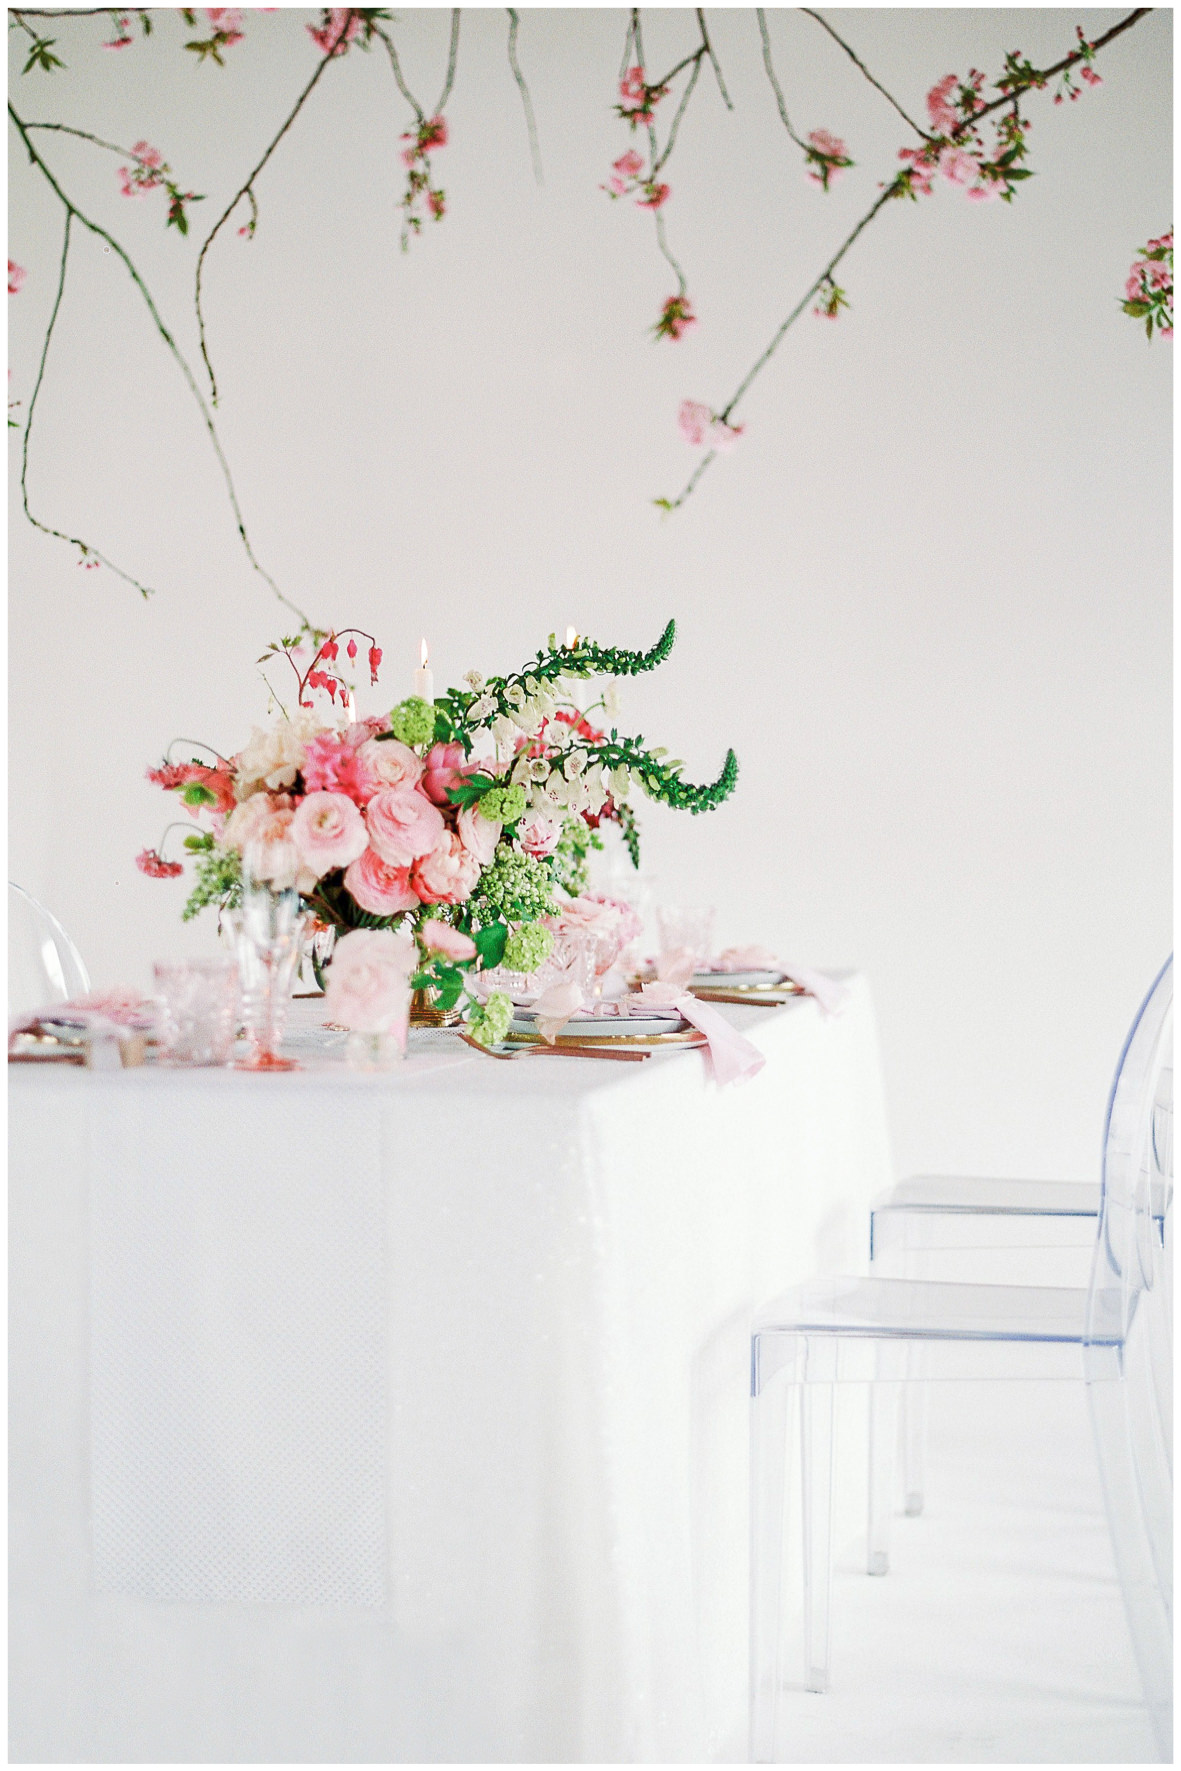 Lucy Davenport Photography, Loft Studios, Rebecca K Events, tablescape, soft pink, wedding breakfast, ghost chairs, suspended florals, florals, centrepiece